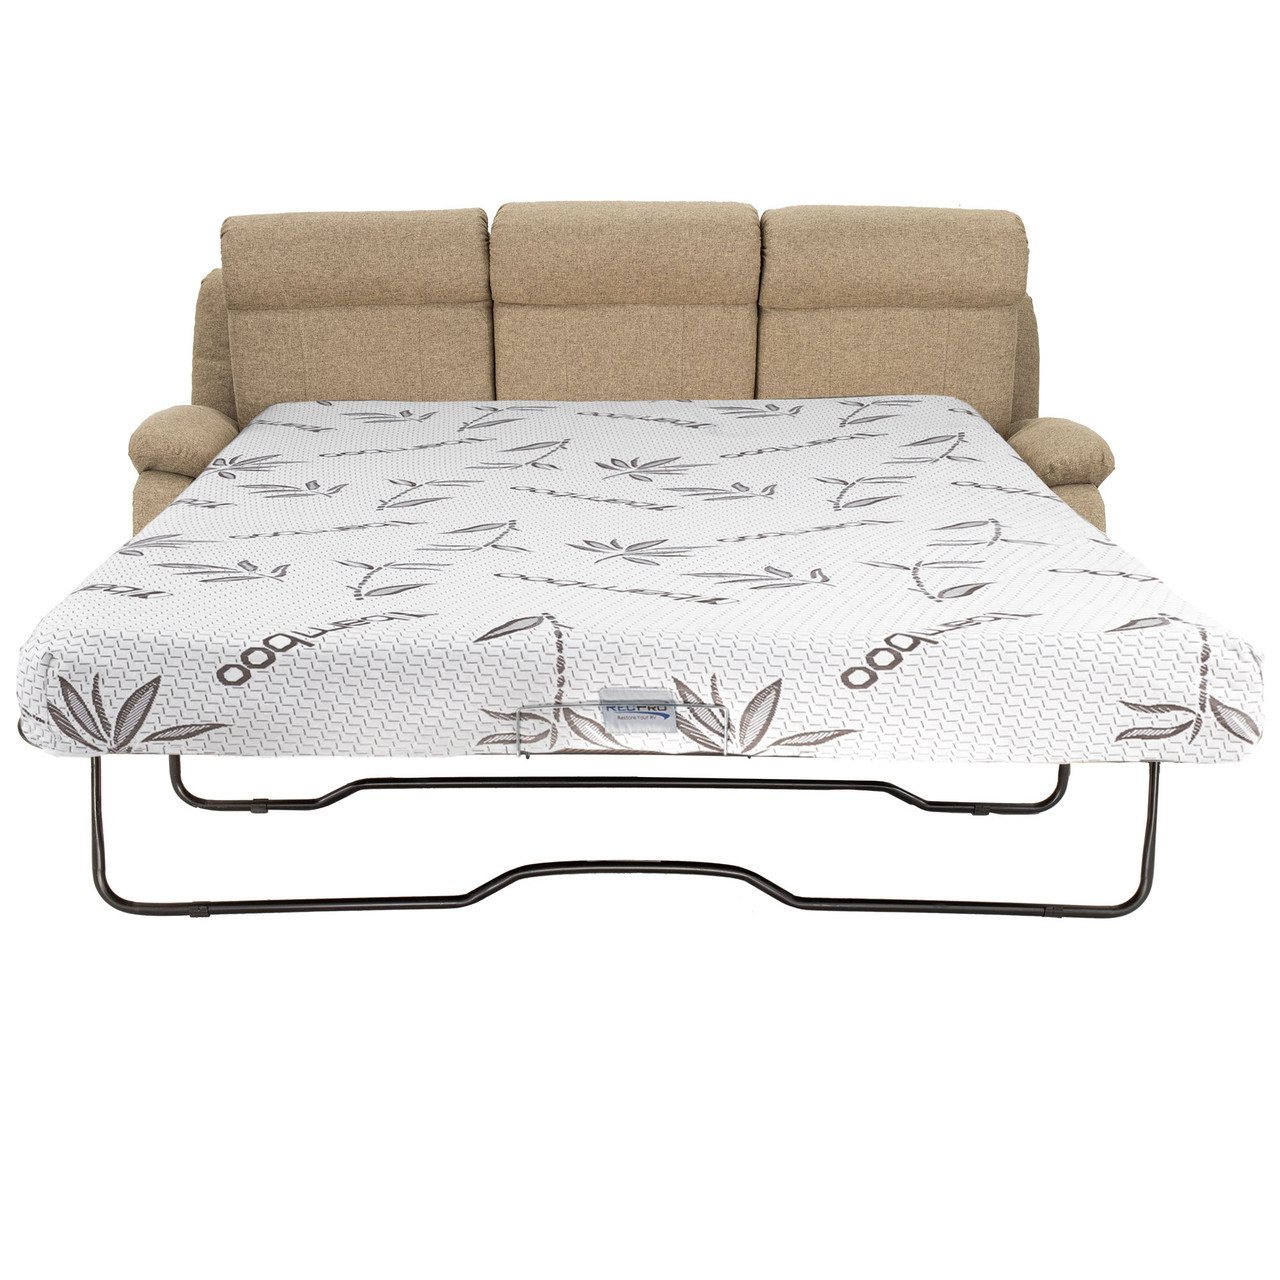 Awe Inspiring 80 Rv Sleeper Sofa With Hide A Bed Cloth Recpro Inzonedesignstudio Interior Chair Design Inzonedesignstudiocom